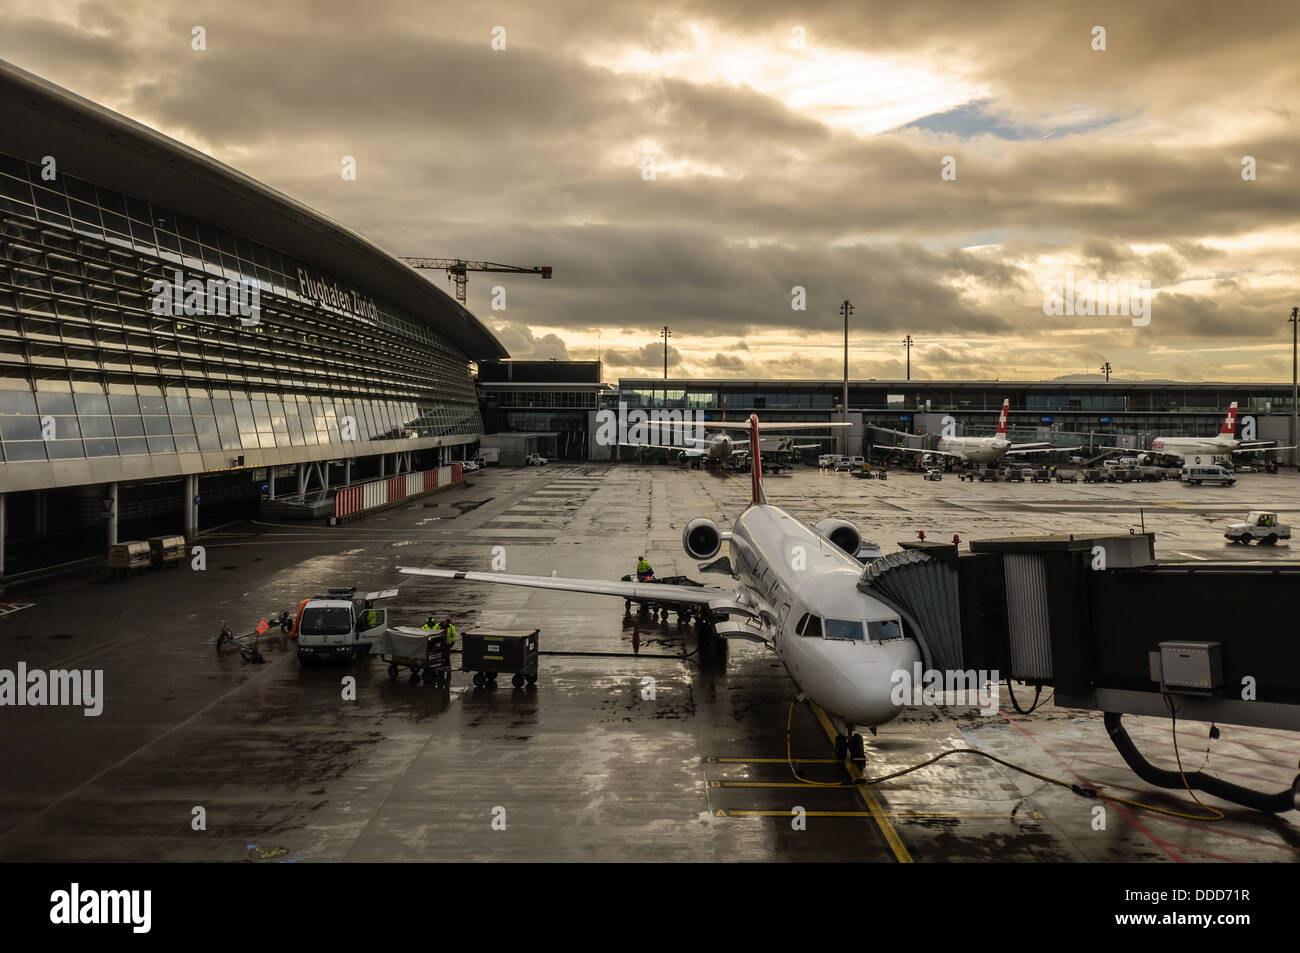 Zurich airport outdoors - Stock Image